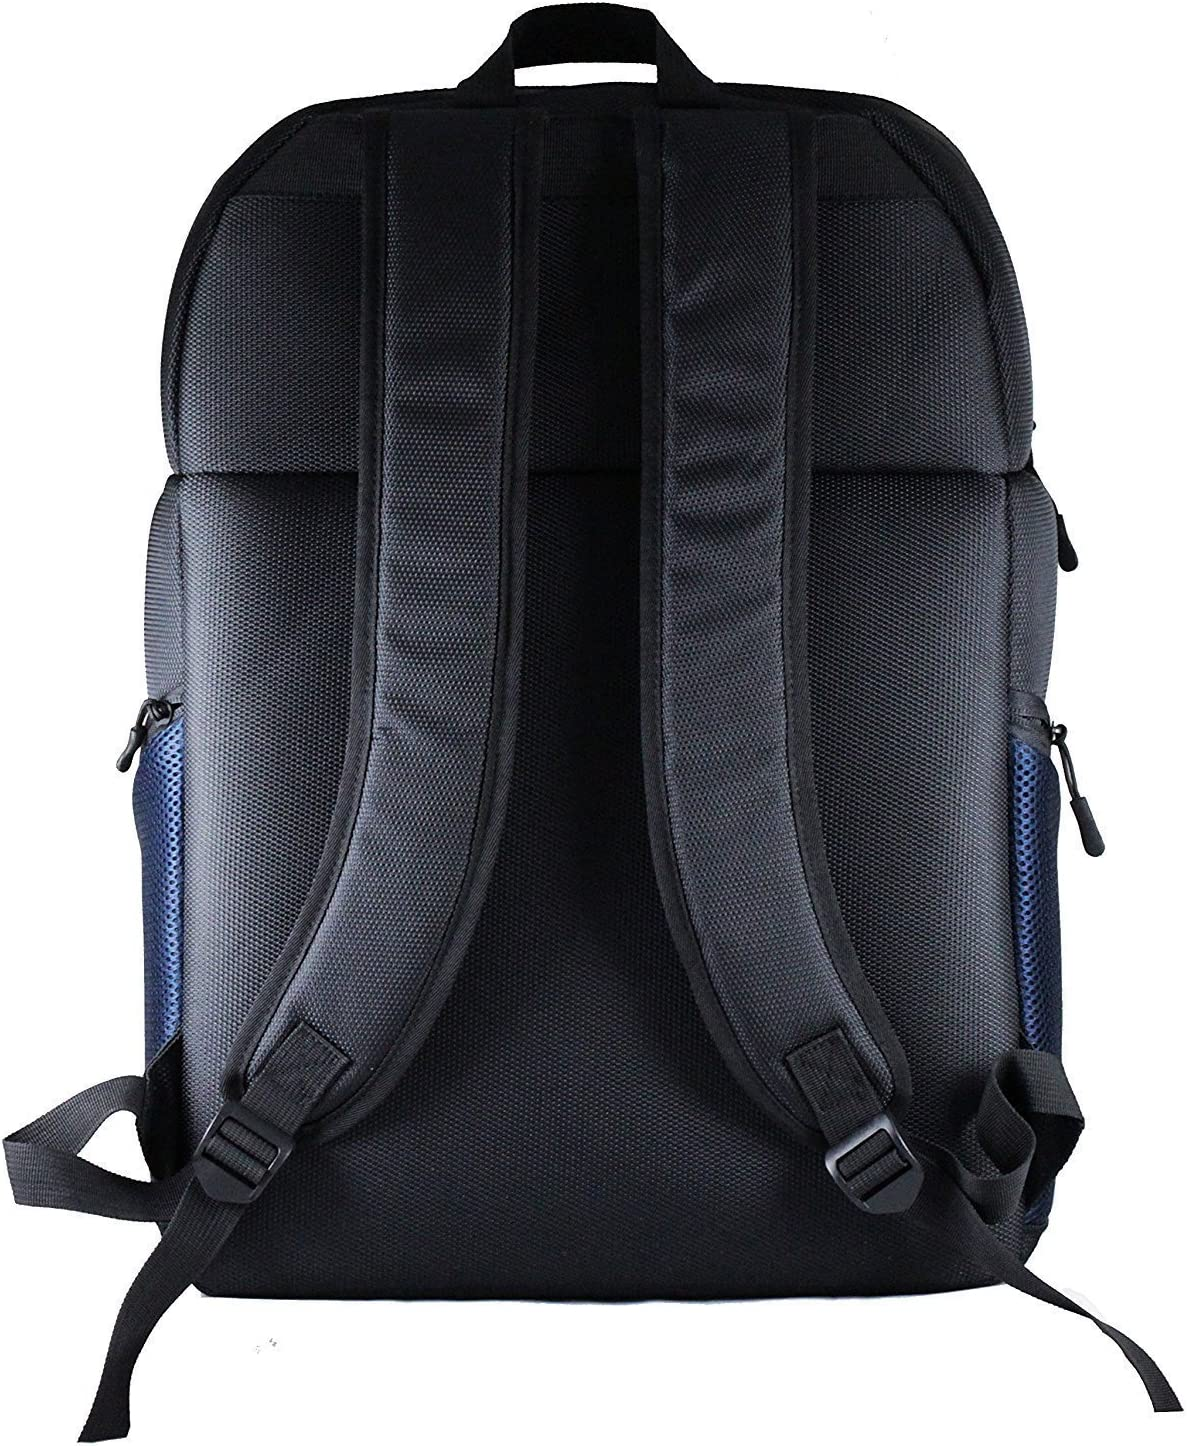 Navitech Rugged Black Backpack//Rucksack//Carry Case Compatible with The/Abdtech 1200 Lumens Mini LED Multimedia Home Theater Projector